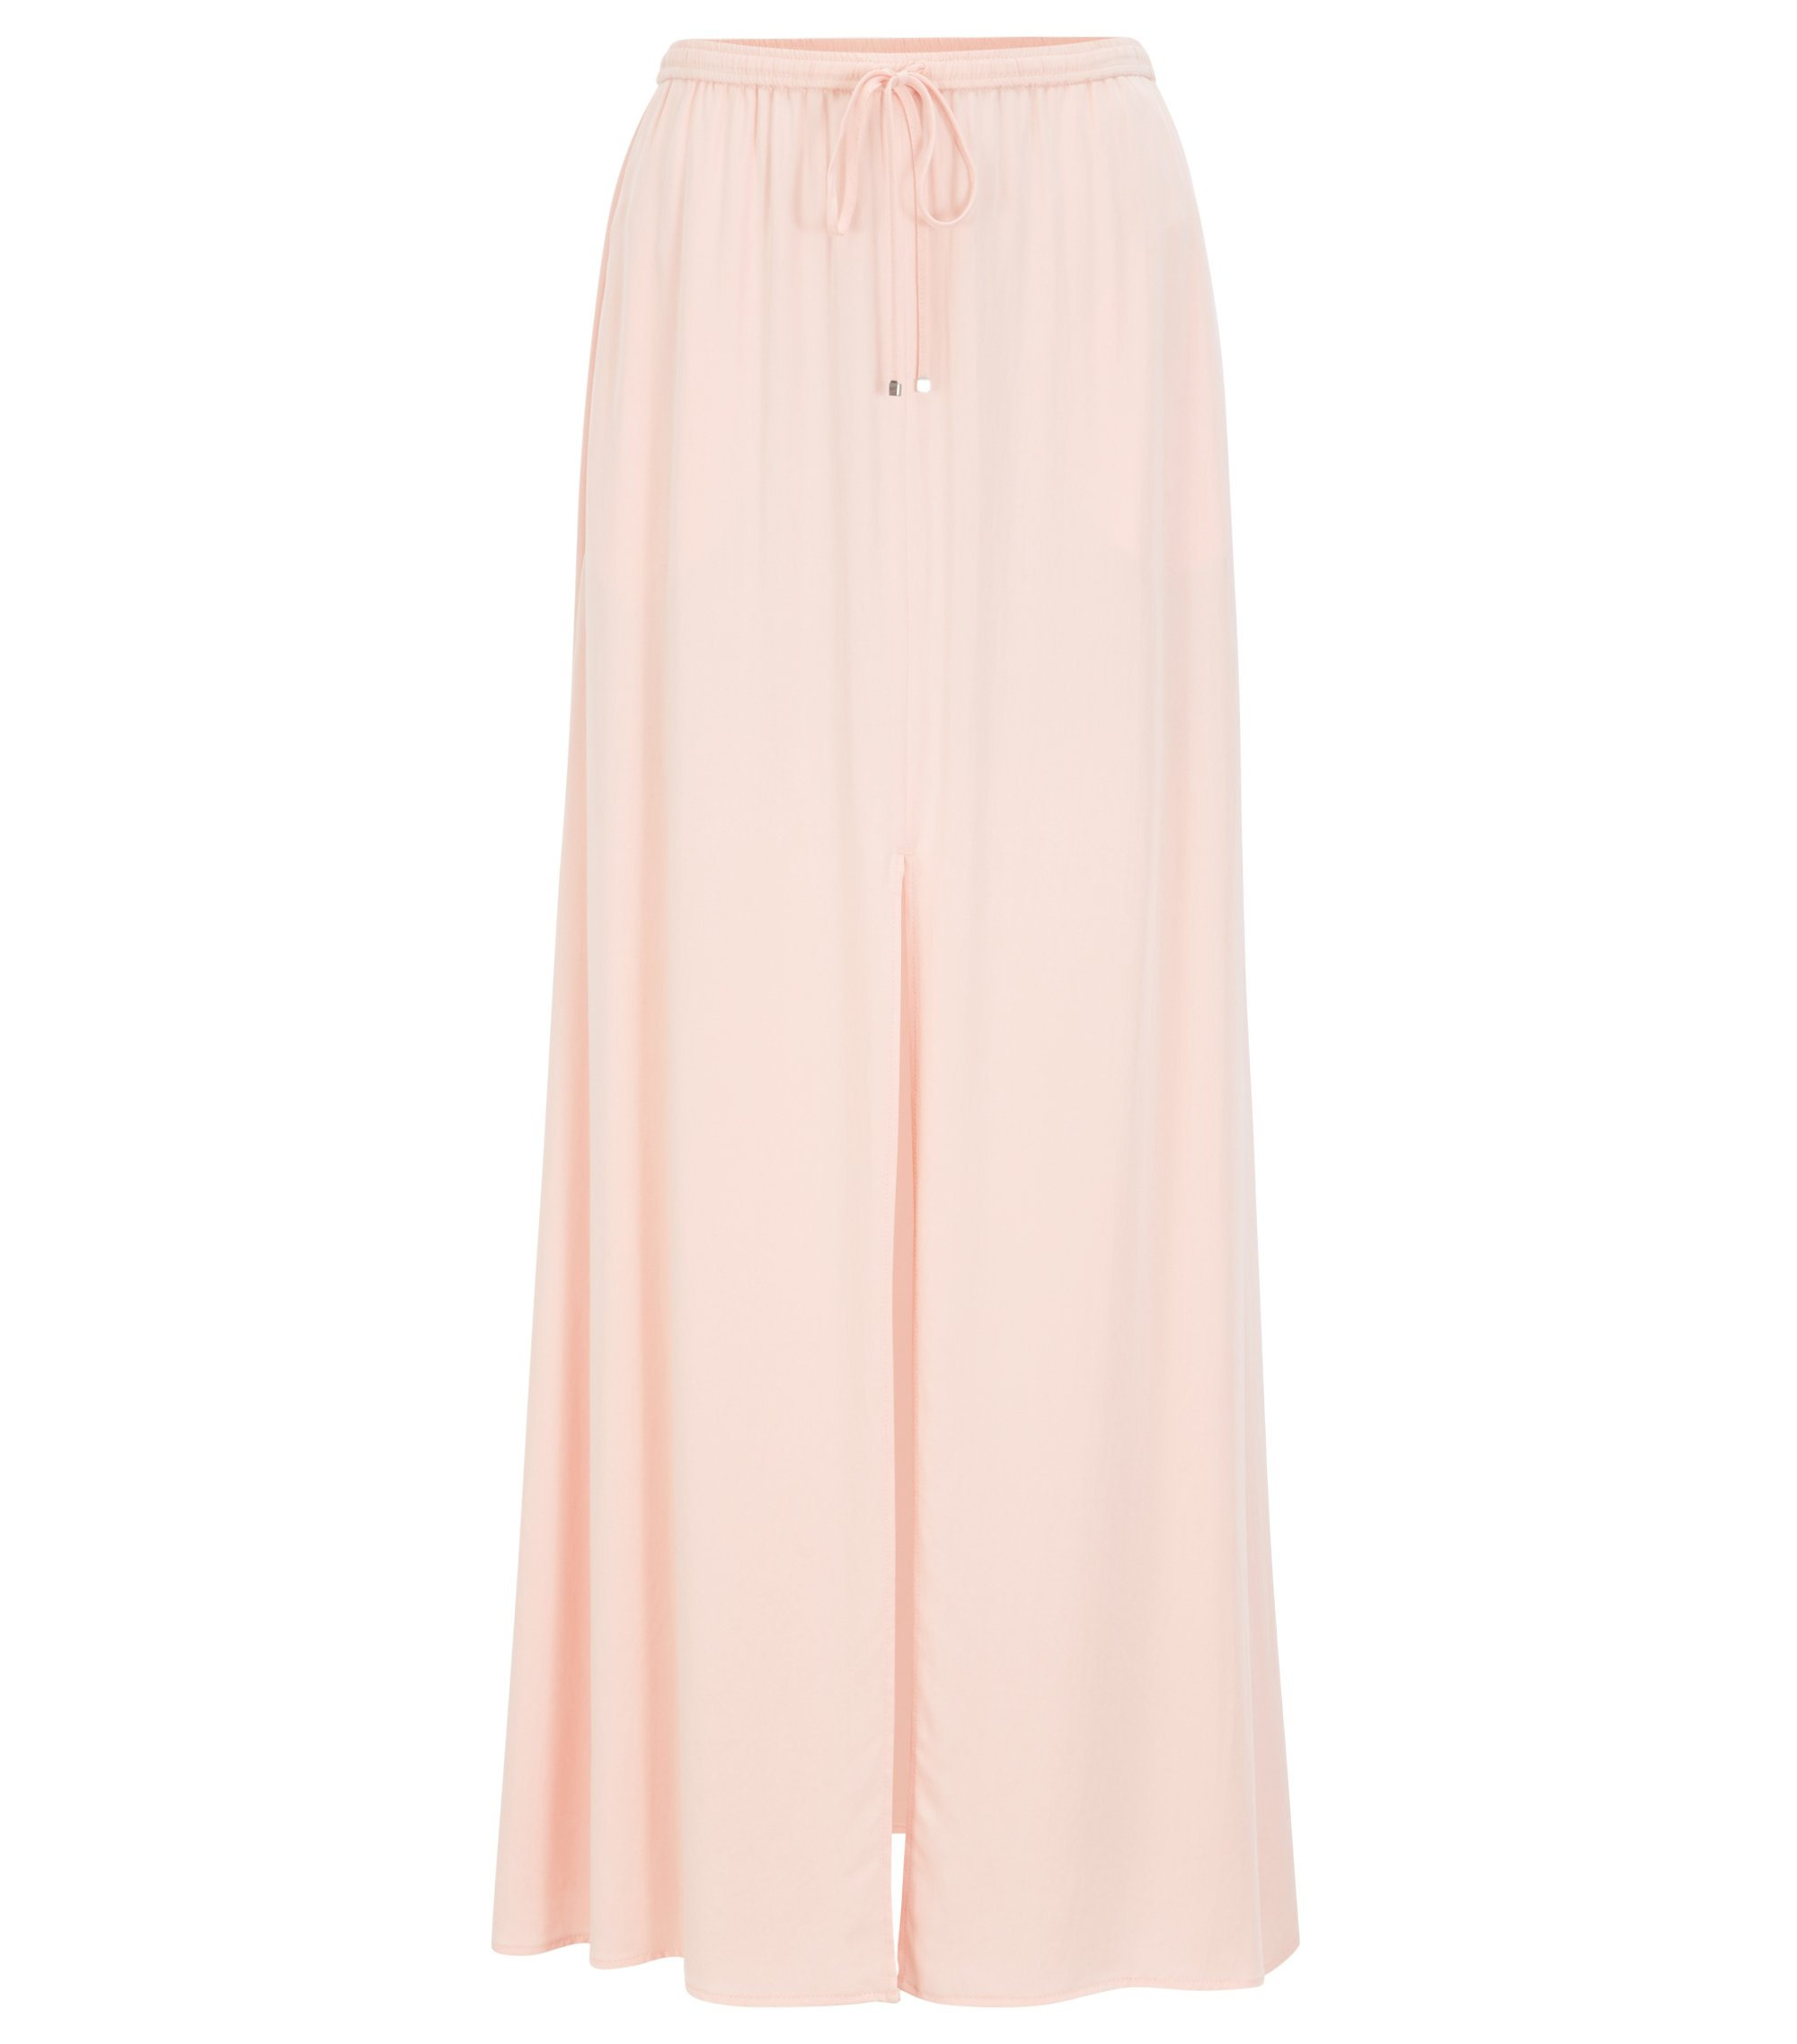 Maxi skirt in peached modal, light pink